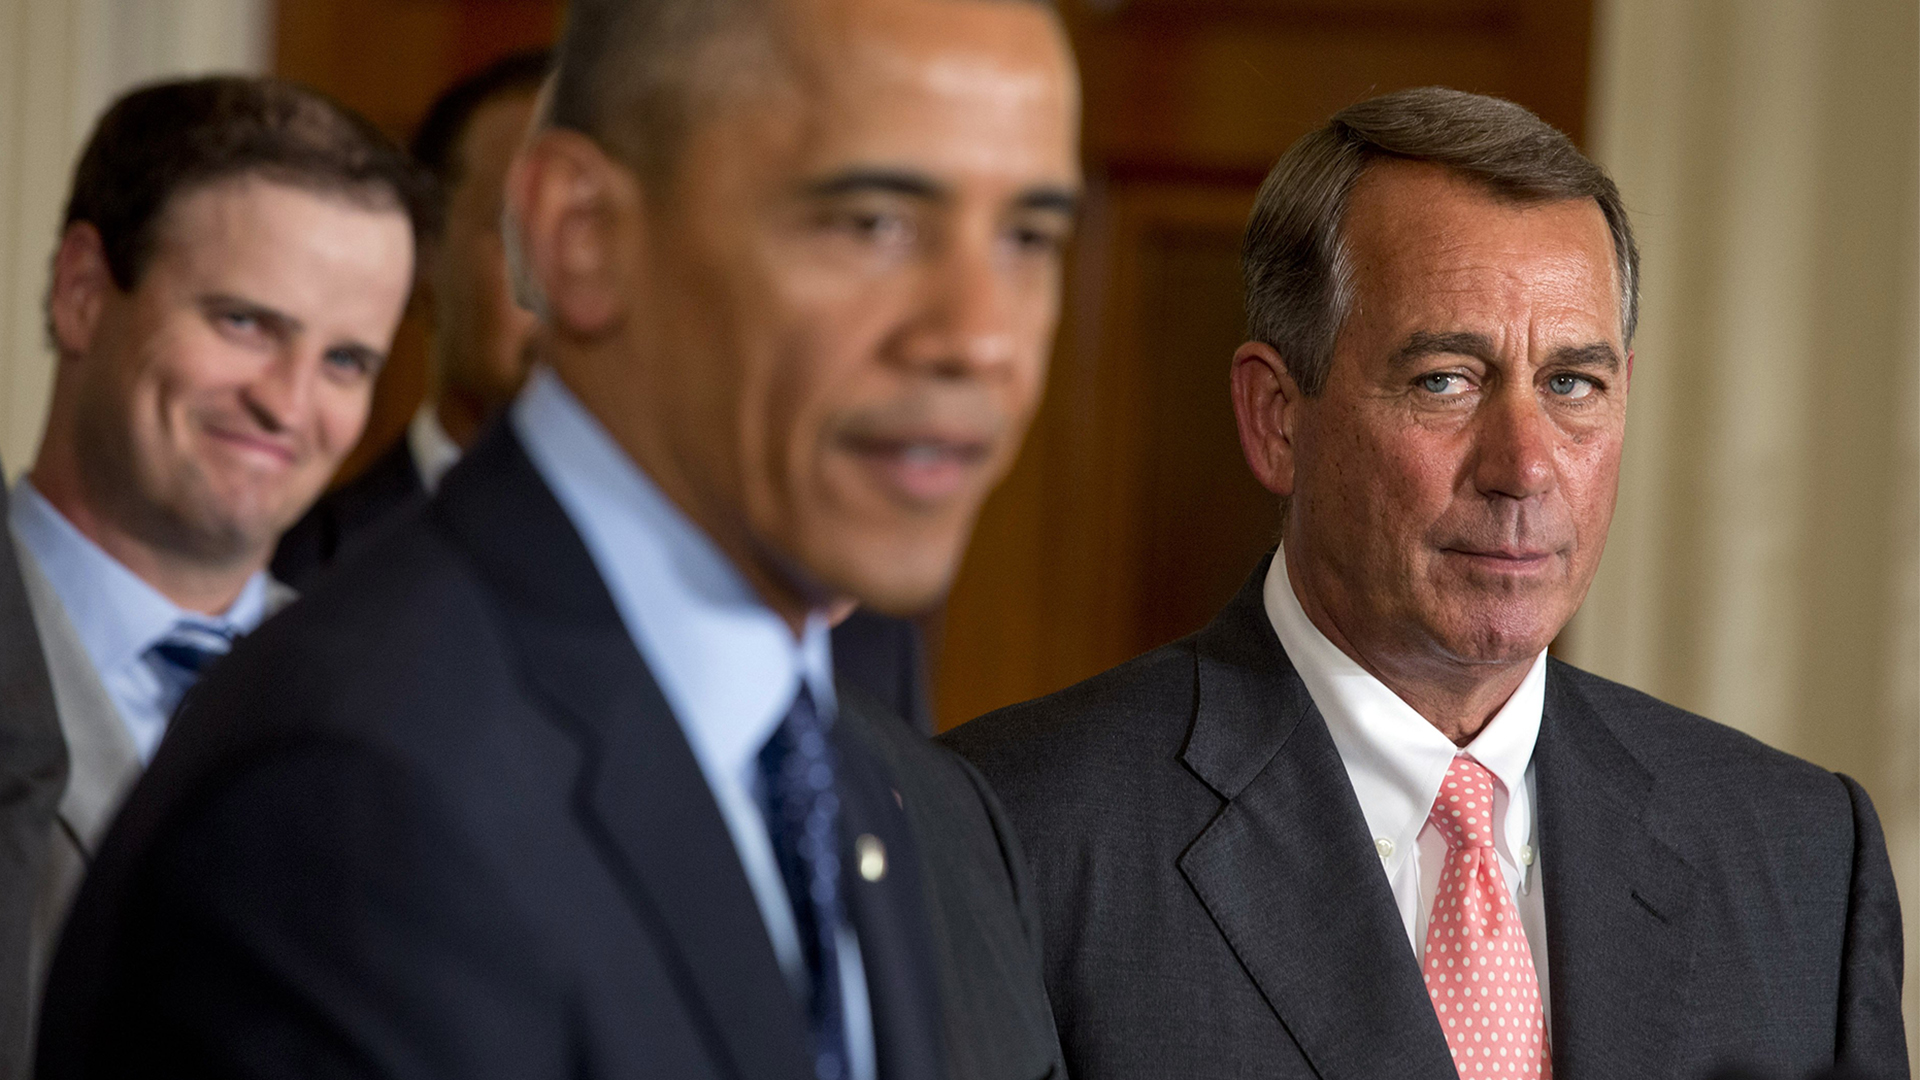 Boehner Confirms Lawsuit Against Obama for Executive Actions